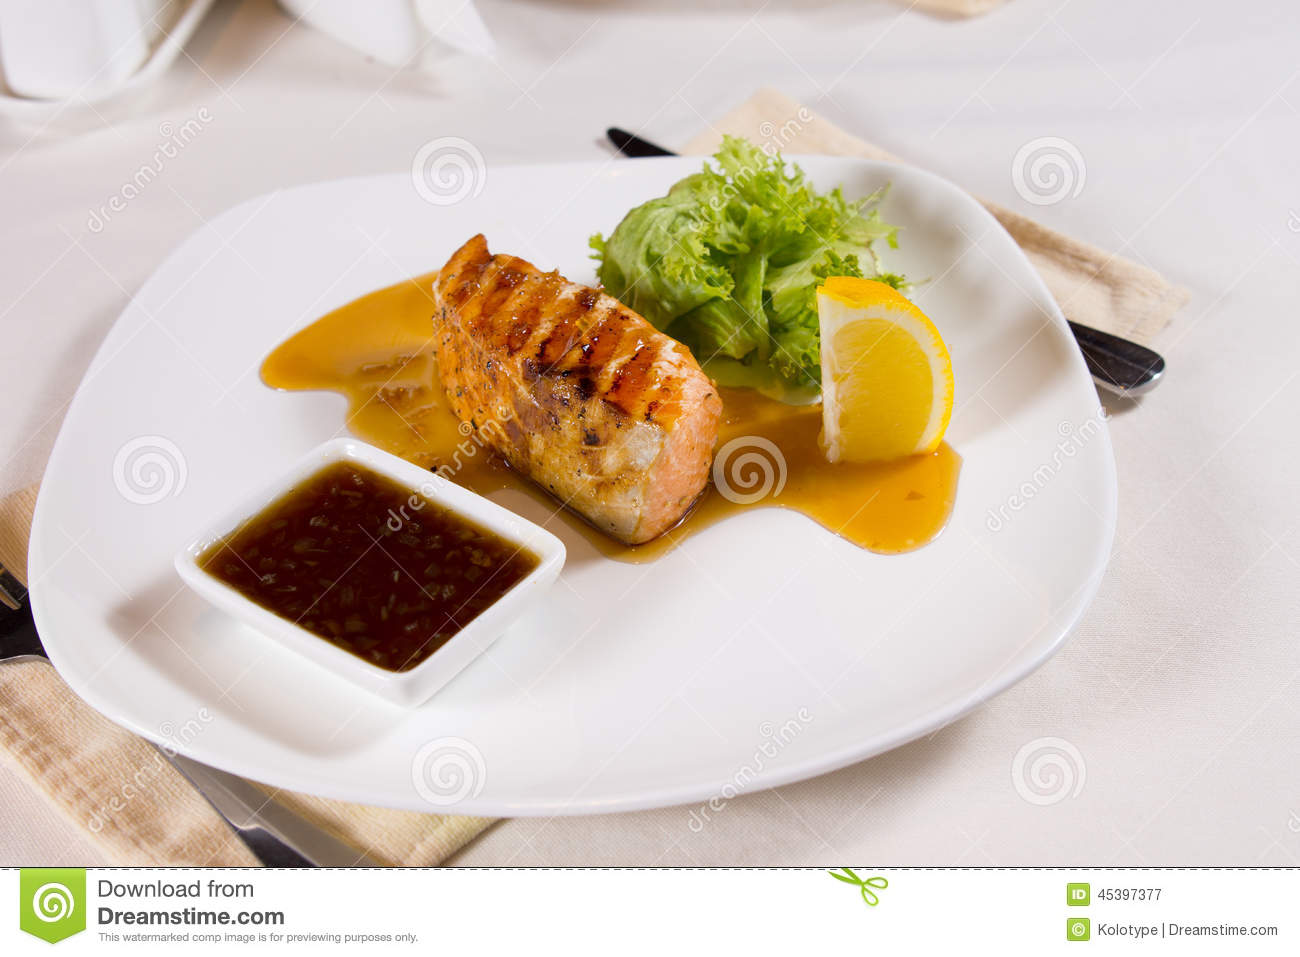 Plated Meal Of Grilled Fish With Garnishes Stock Photo